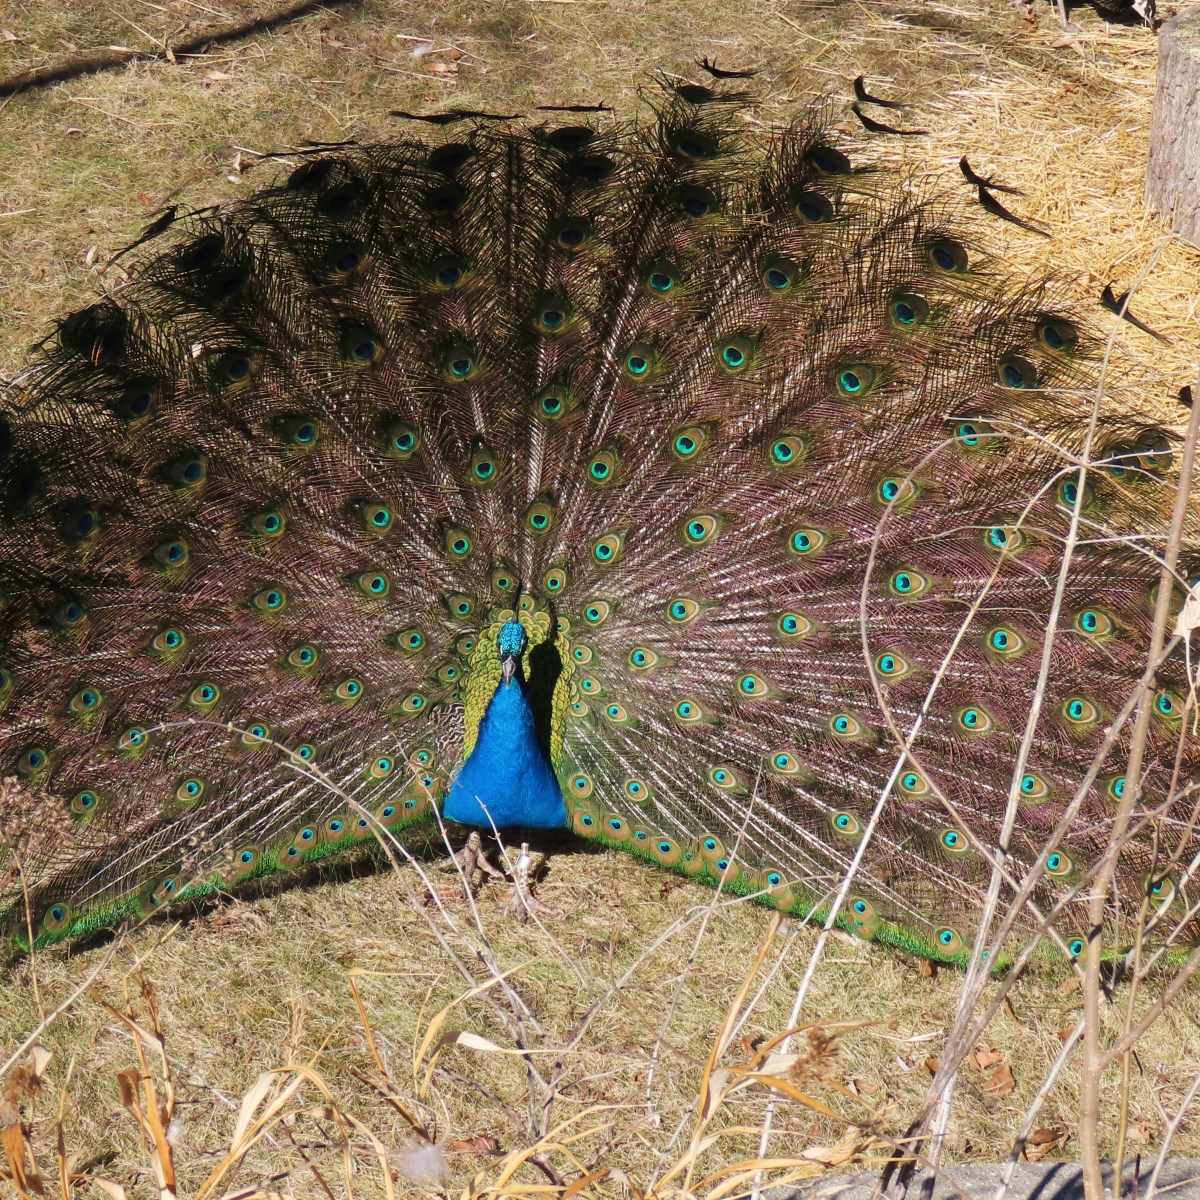 A peacock with its wings spread